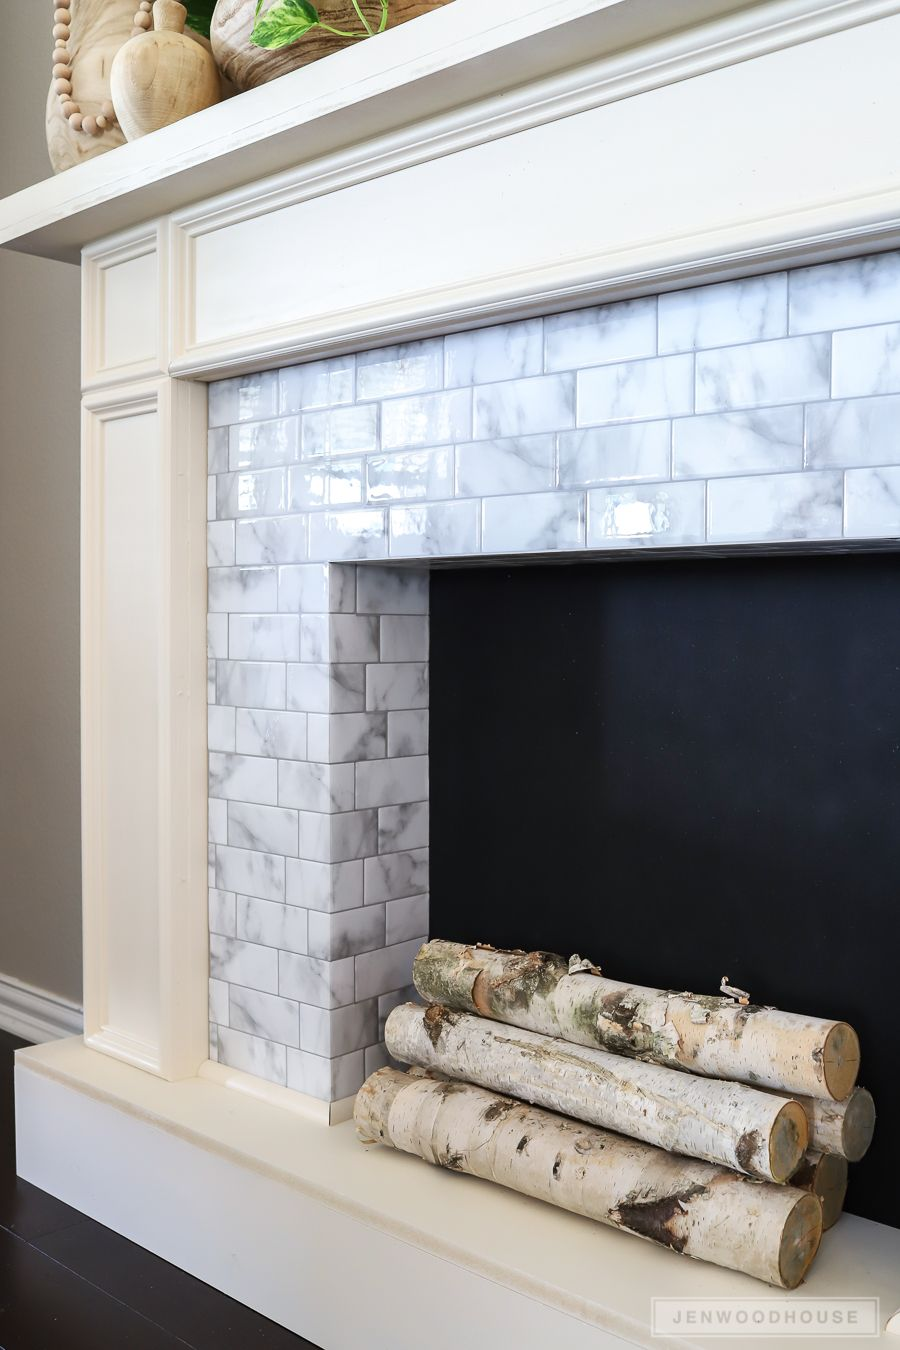 Heat Resistant Tile for Fireplace Lovely How to Make A Diy Faux Fireplace Featuring Smart Tiles